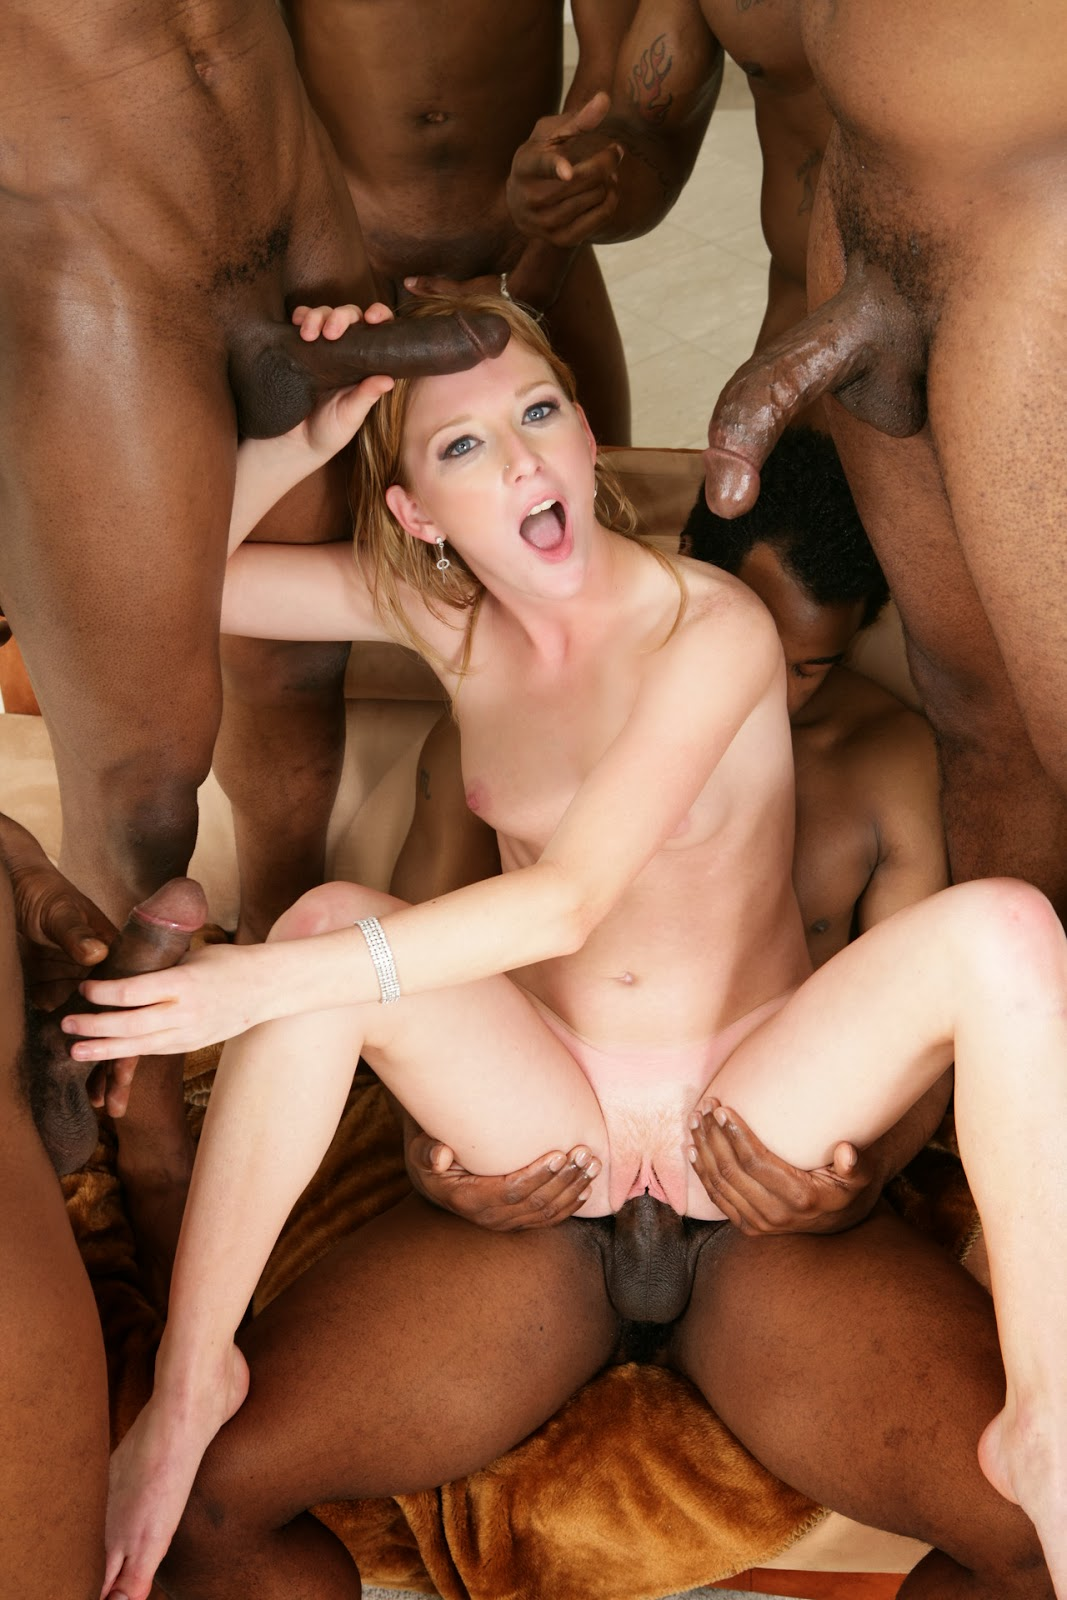 Black on white gangbang